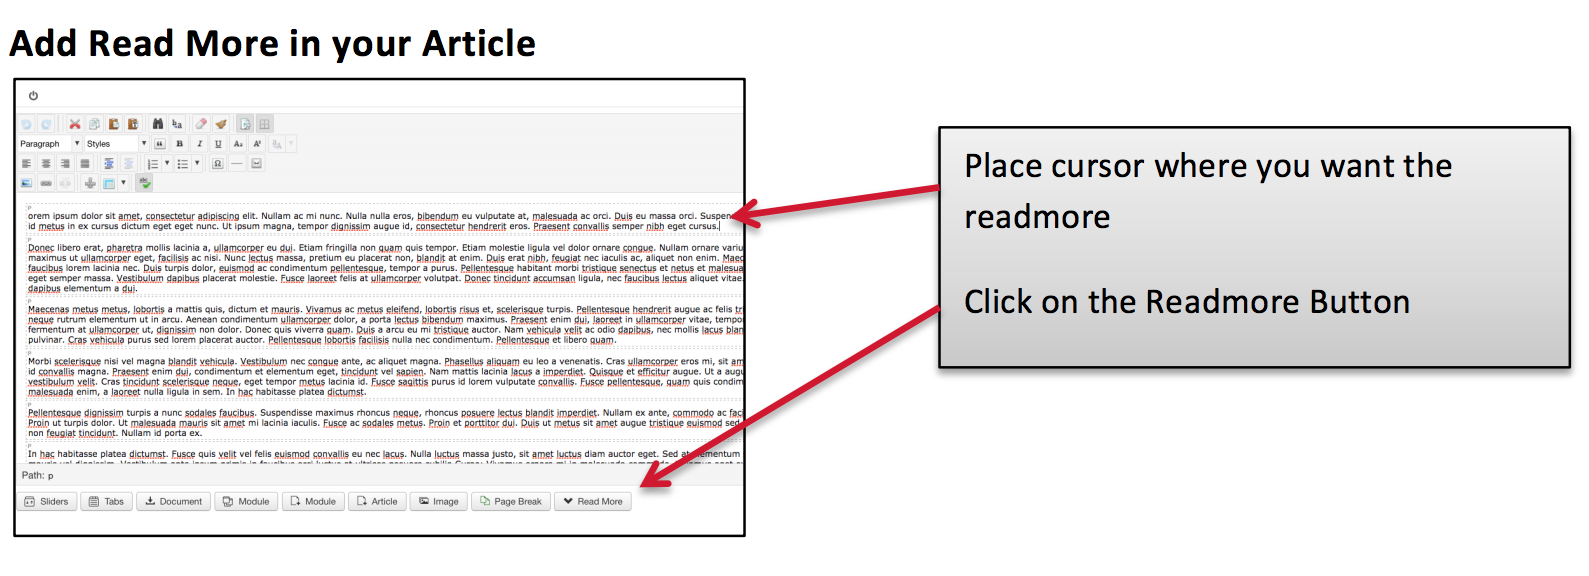 How to Add Read More button